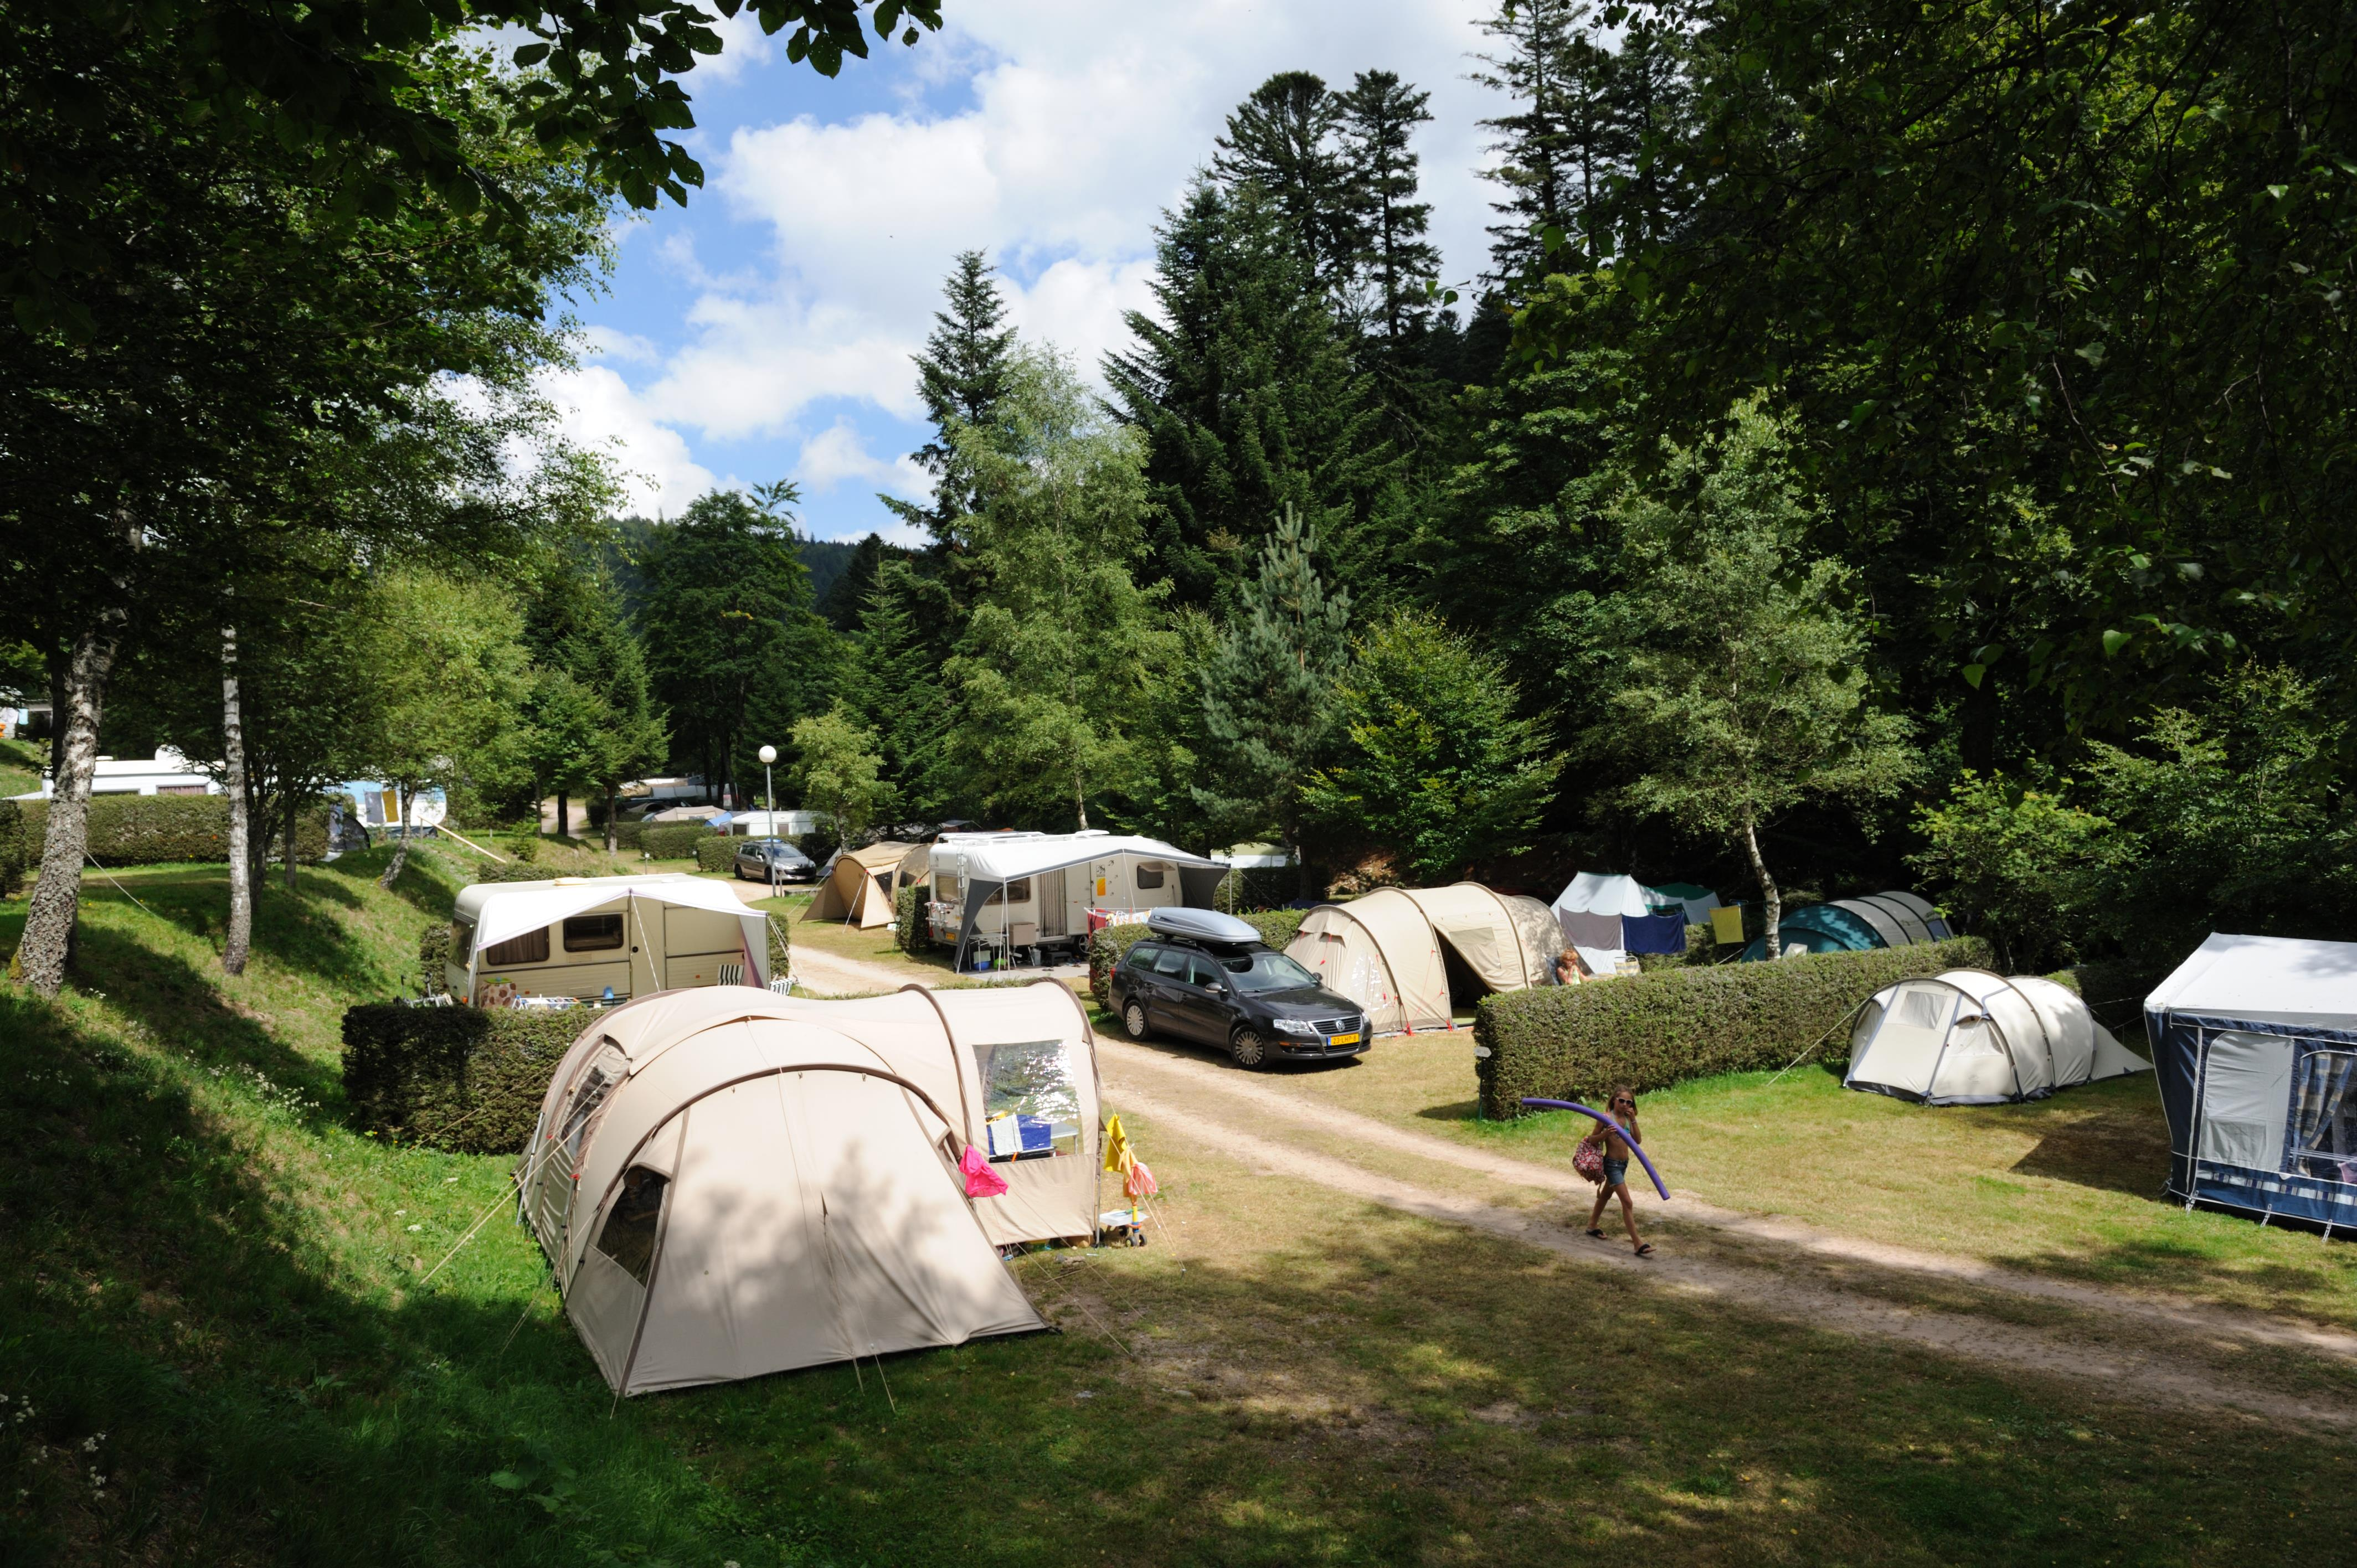 Establishment Camping de Belle Hutte - La Bresse